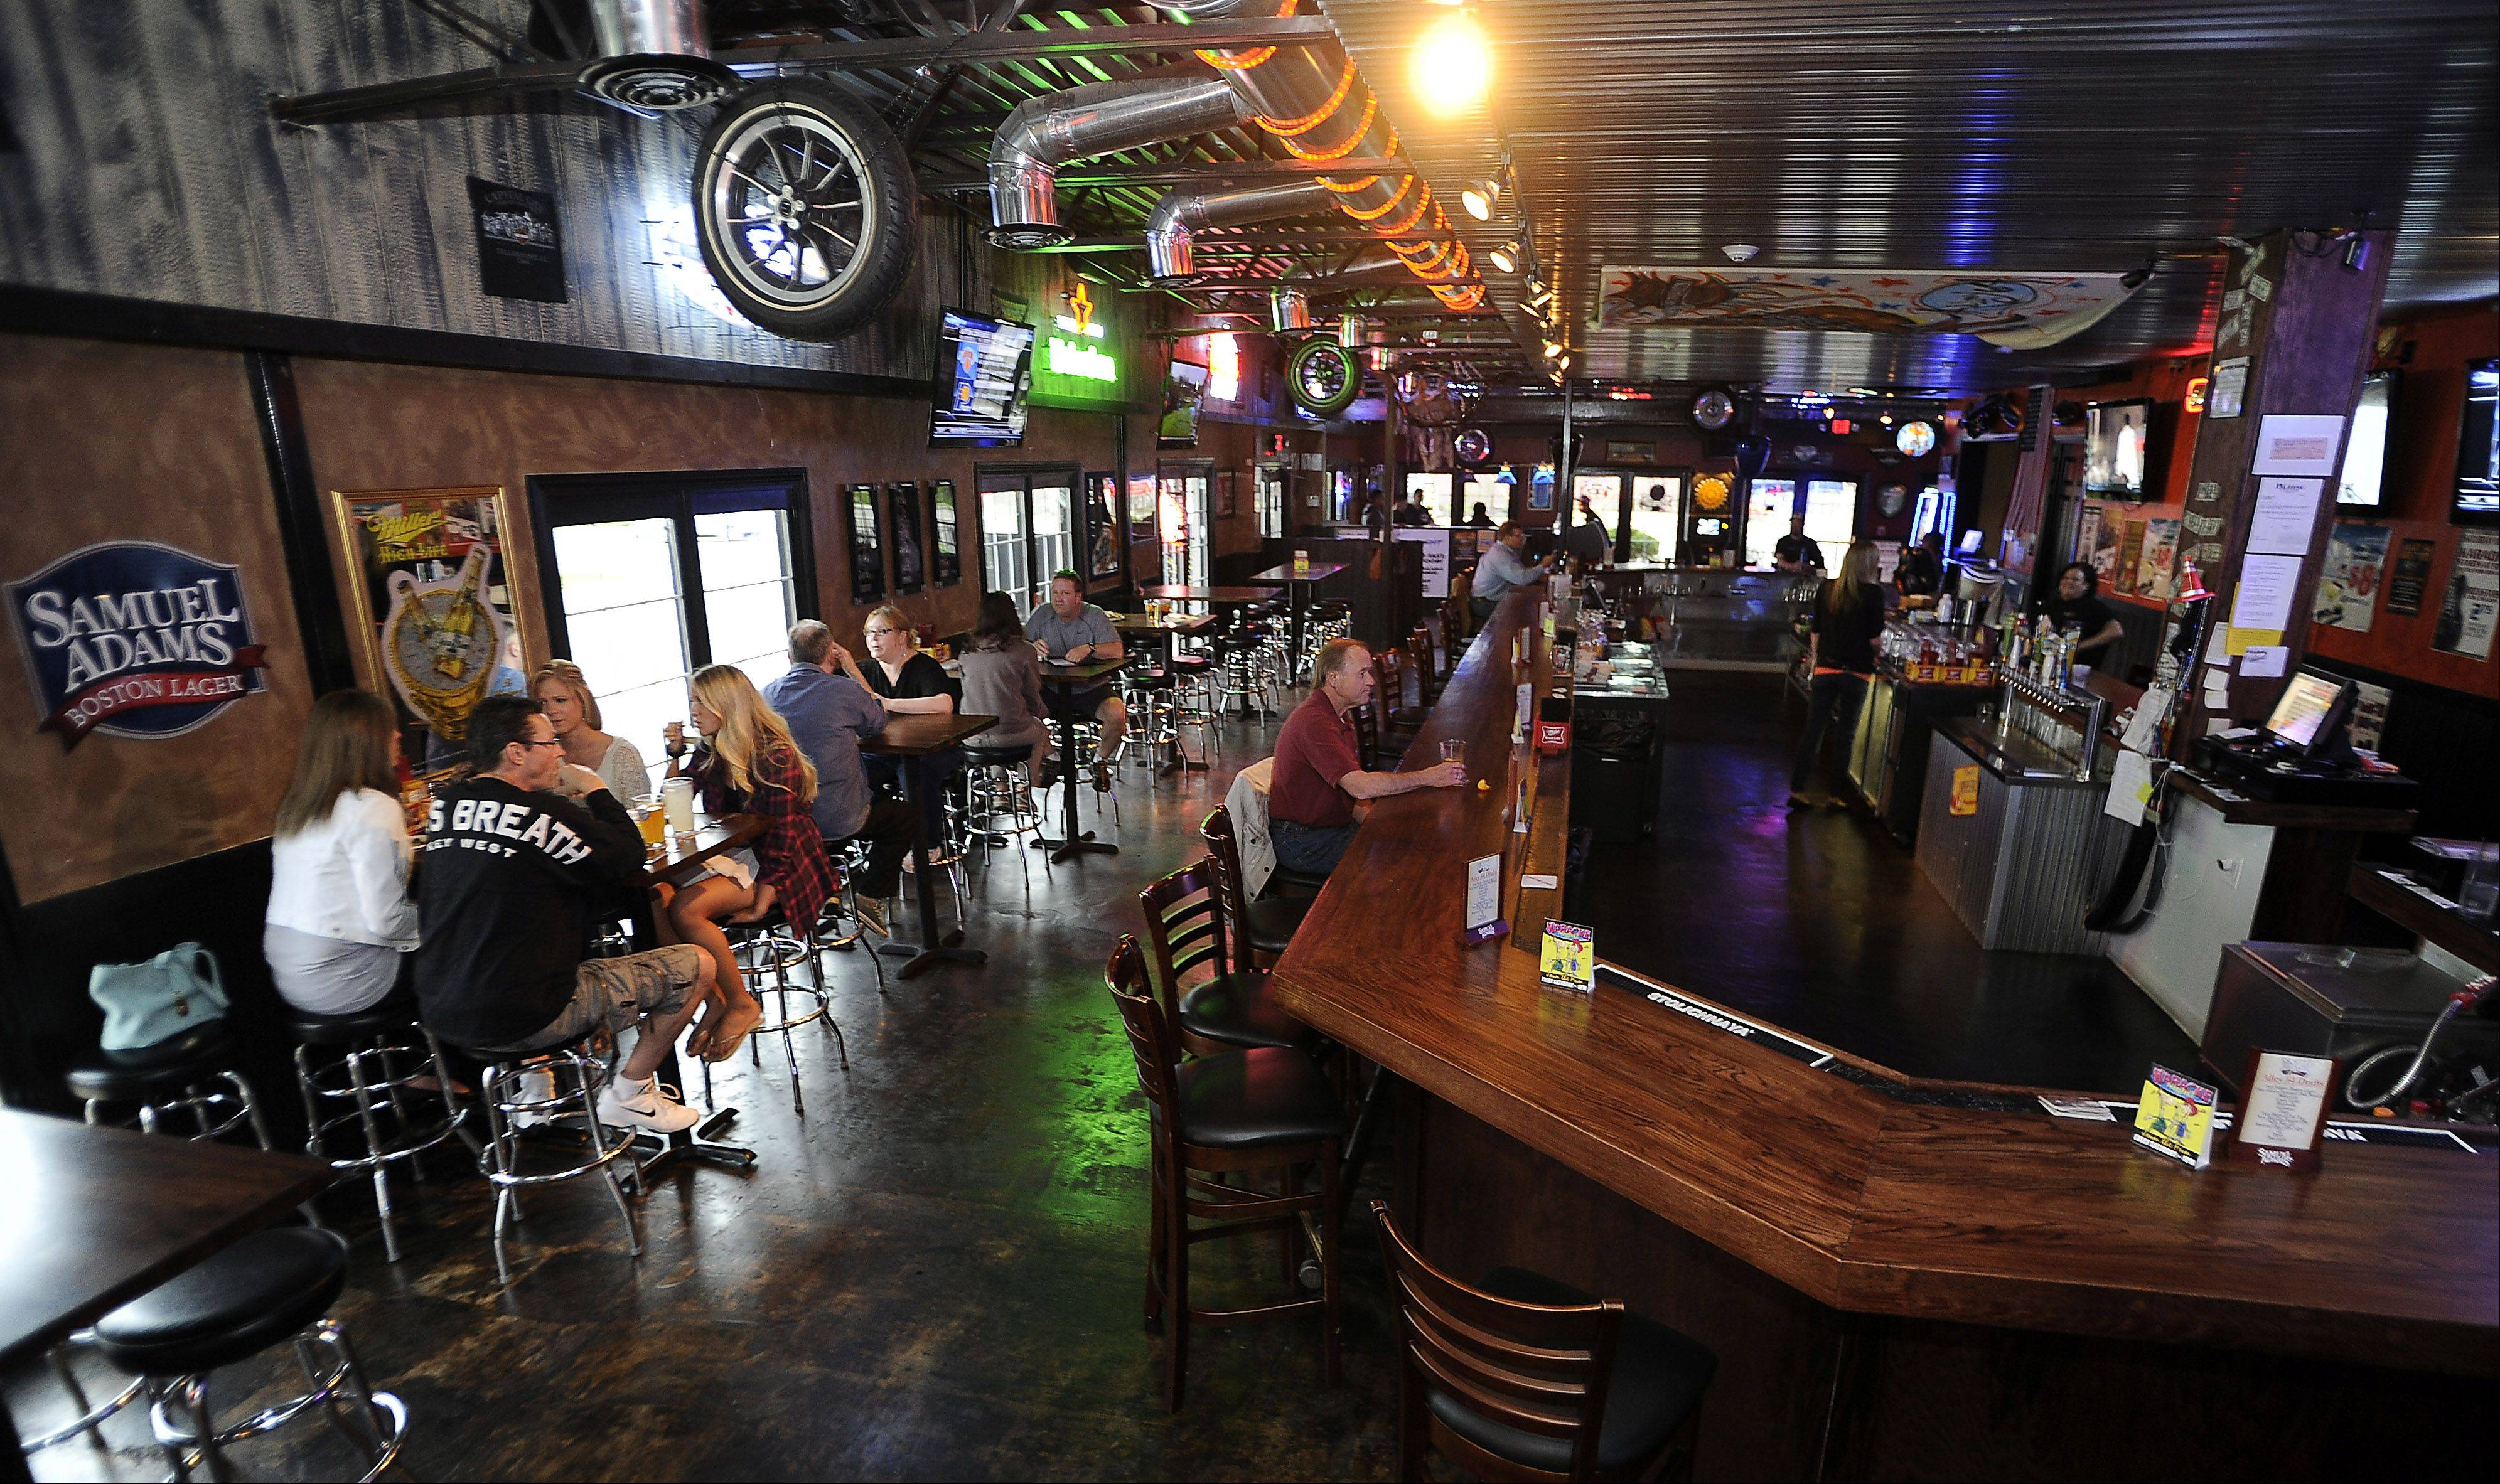 Bike parts and tires reinforce the Harley theme at Alley 64 in Palatine.